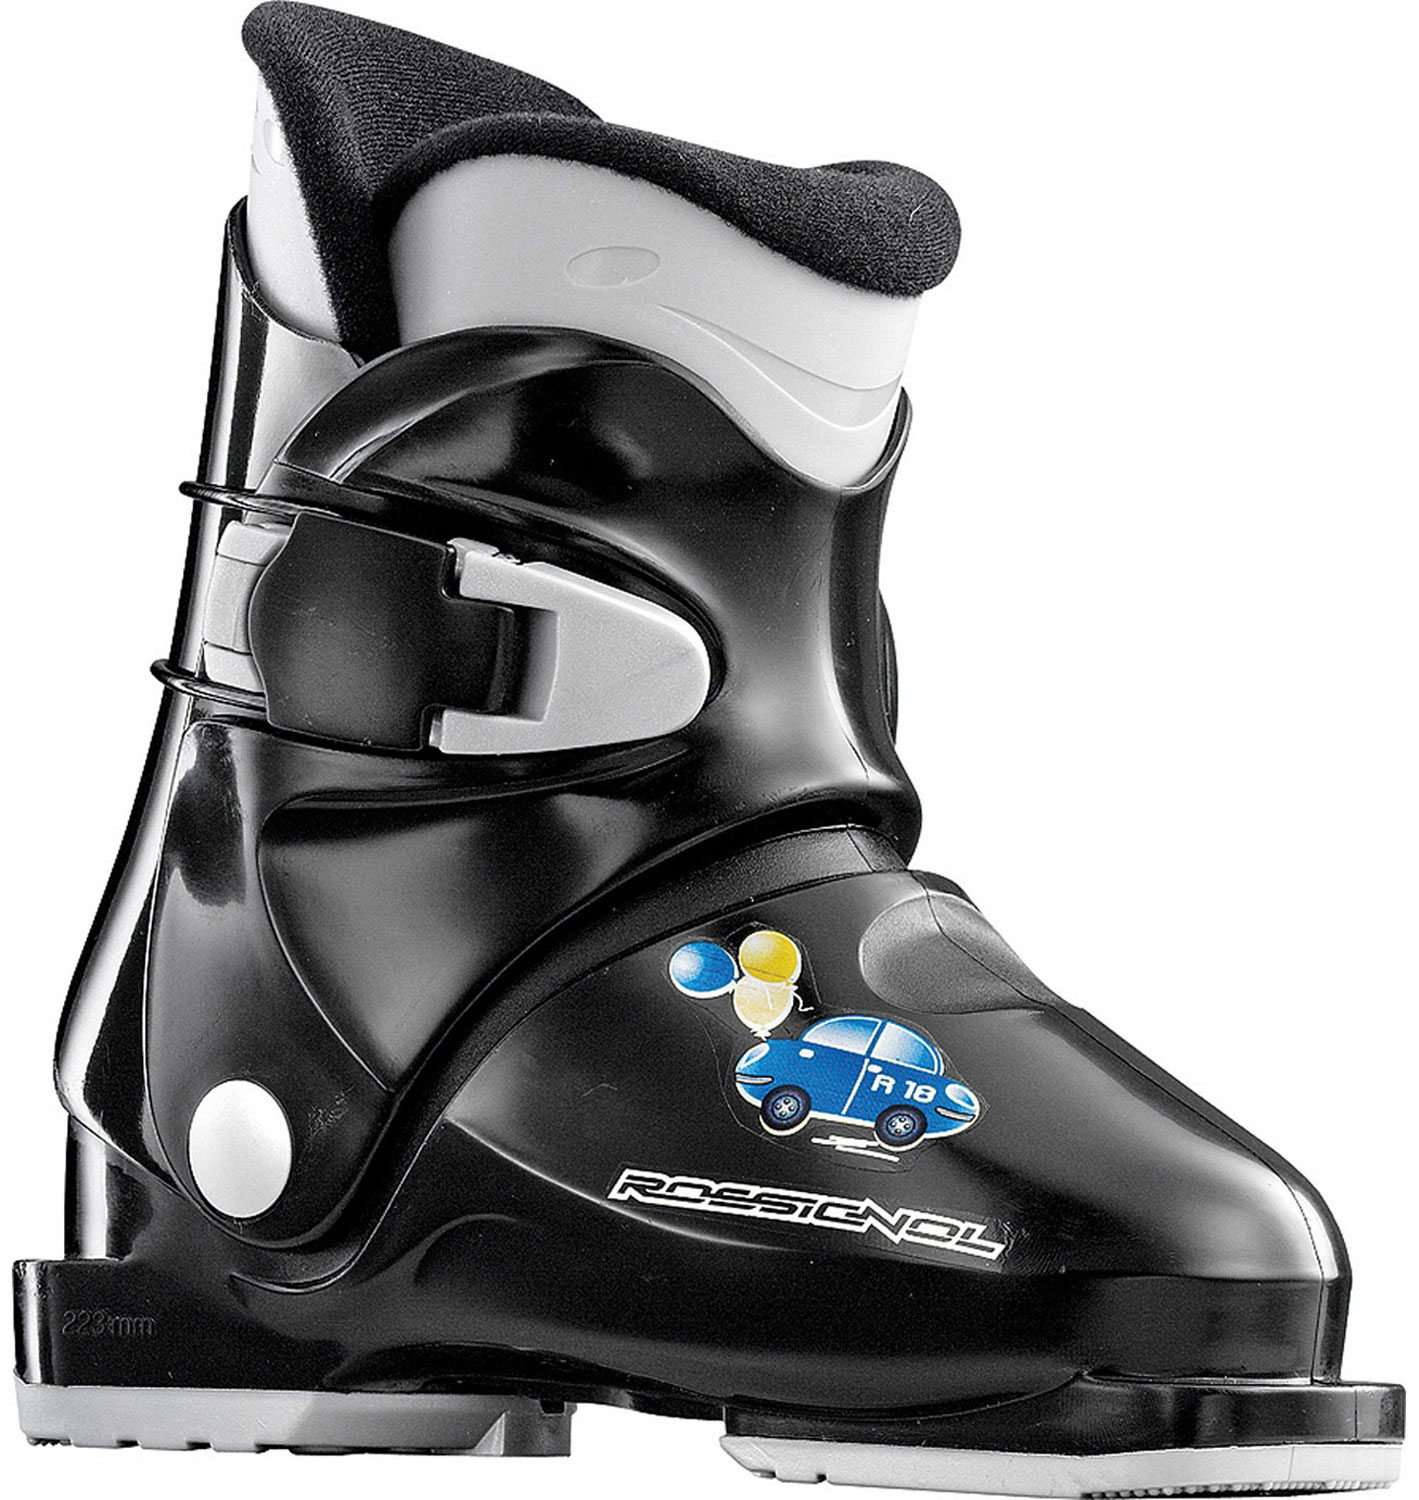 Ski The R18 is a great introductory boot for first time kid skiers. The boot has a large opening allowing even the smallest kids easily enter and exit. One simple buckle is quick and easy for parents to get the little ones out on the hill. Its soft flex allows young skiers to master pizza wedges and french fries.Key Features of the Rossignol R18 Ski Boots: Flex index 30 Shell specification POLYPROPYLENE Bootboard - Cuff specification POLYPROPYLENE Liner - technology THERMOFORMED Buckles - material 1 MEMO buckle - $77.95